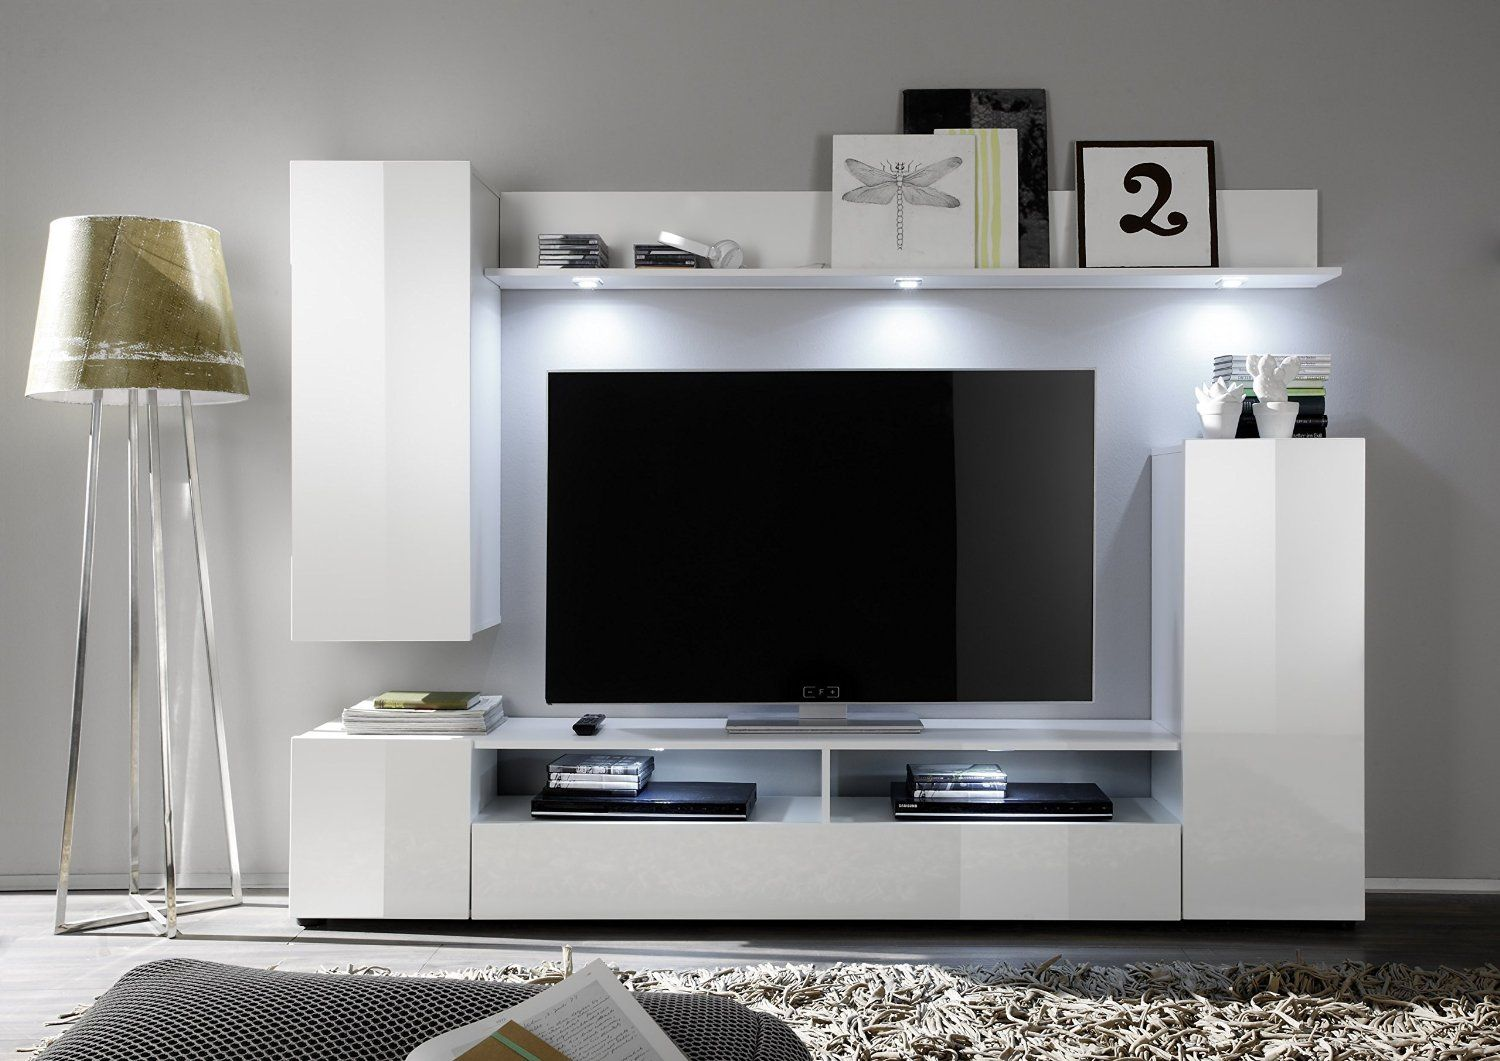 Furnline 1396 945 01 Dos High Gloss Tv Stand Wall Unit Living Room Furniture Set White Amazon